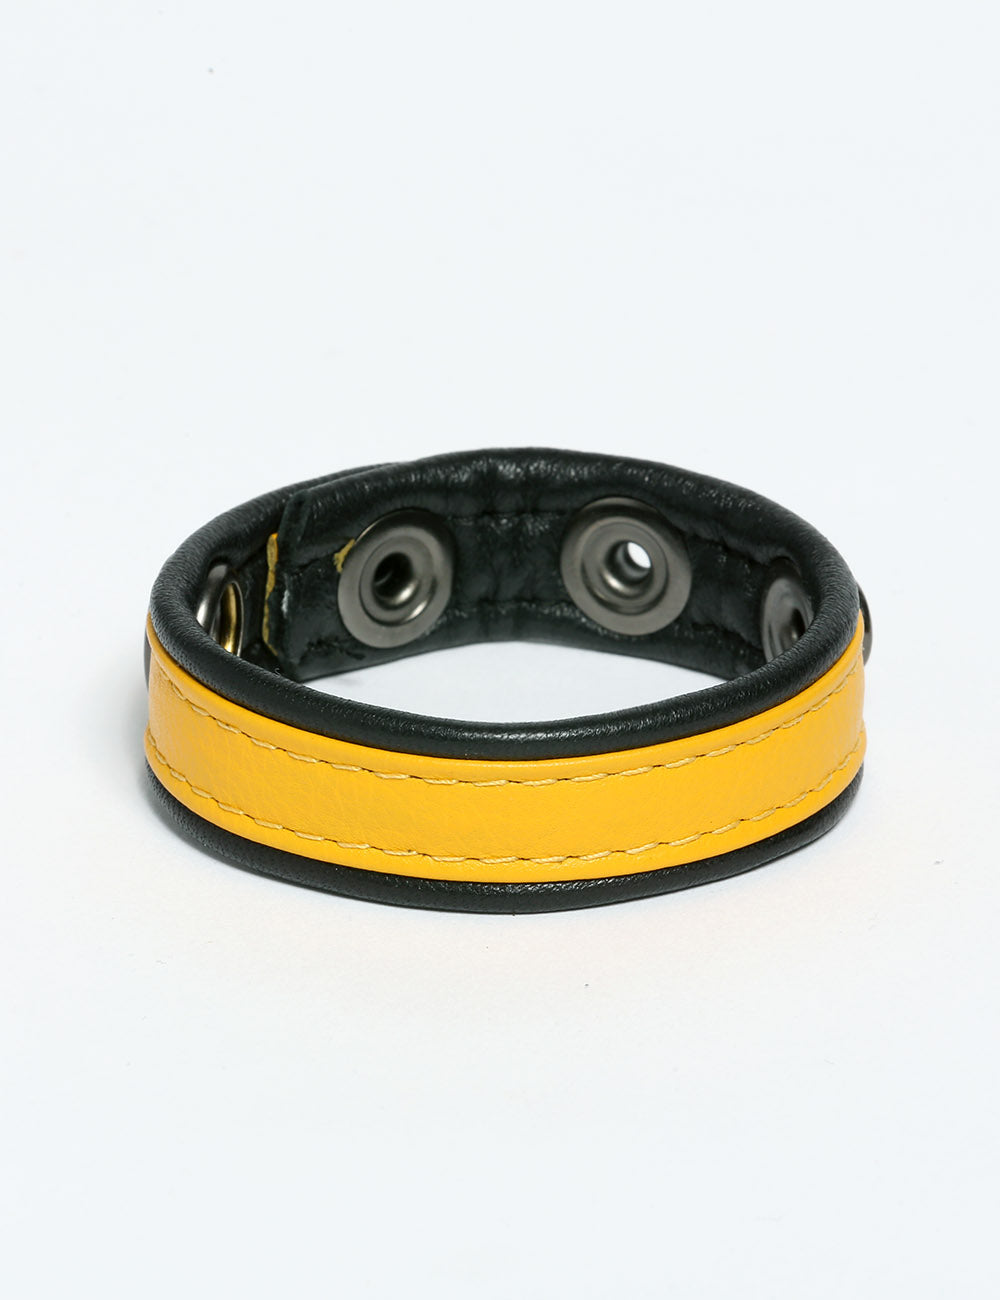 Adjustable Leather cockring with snaps in yellow